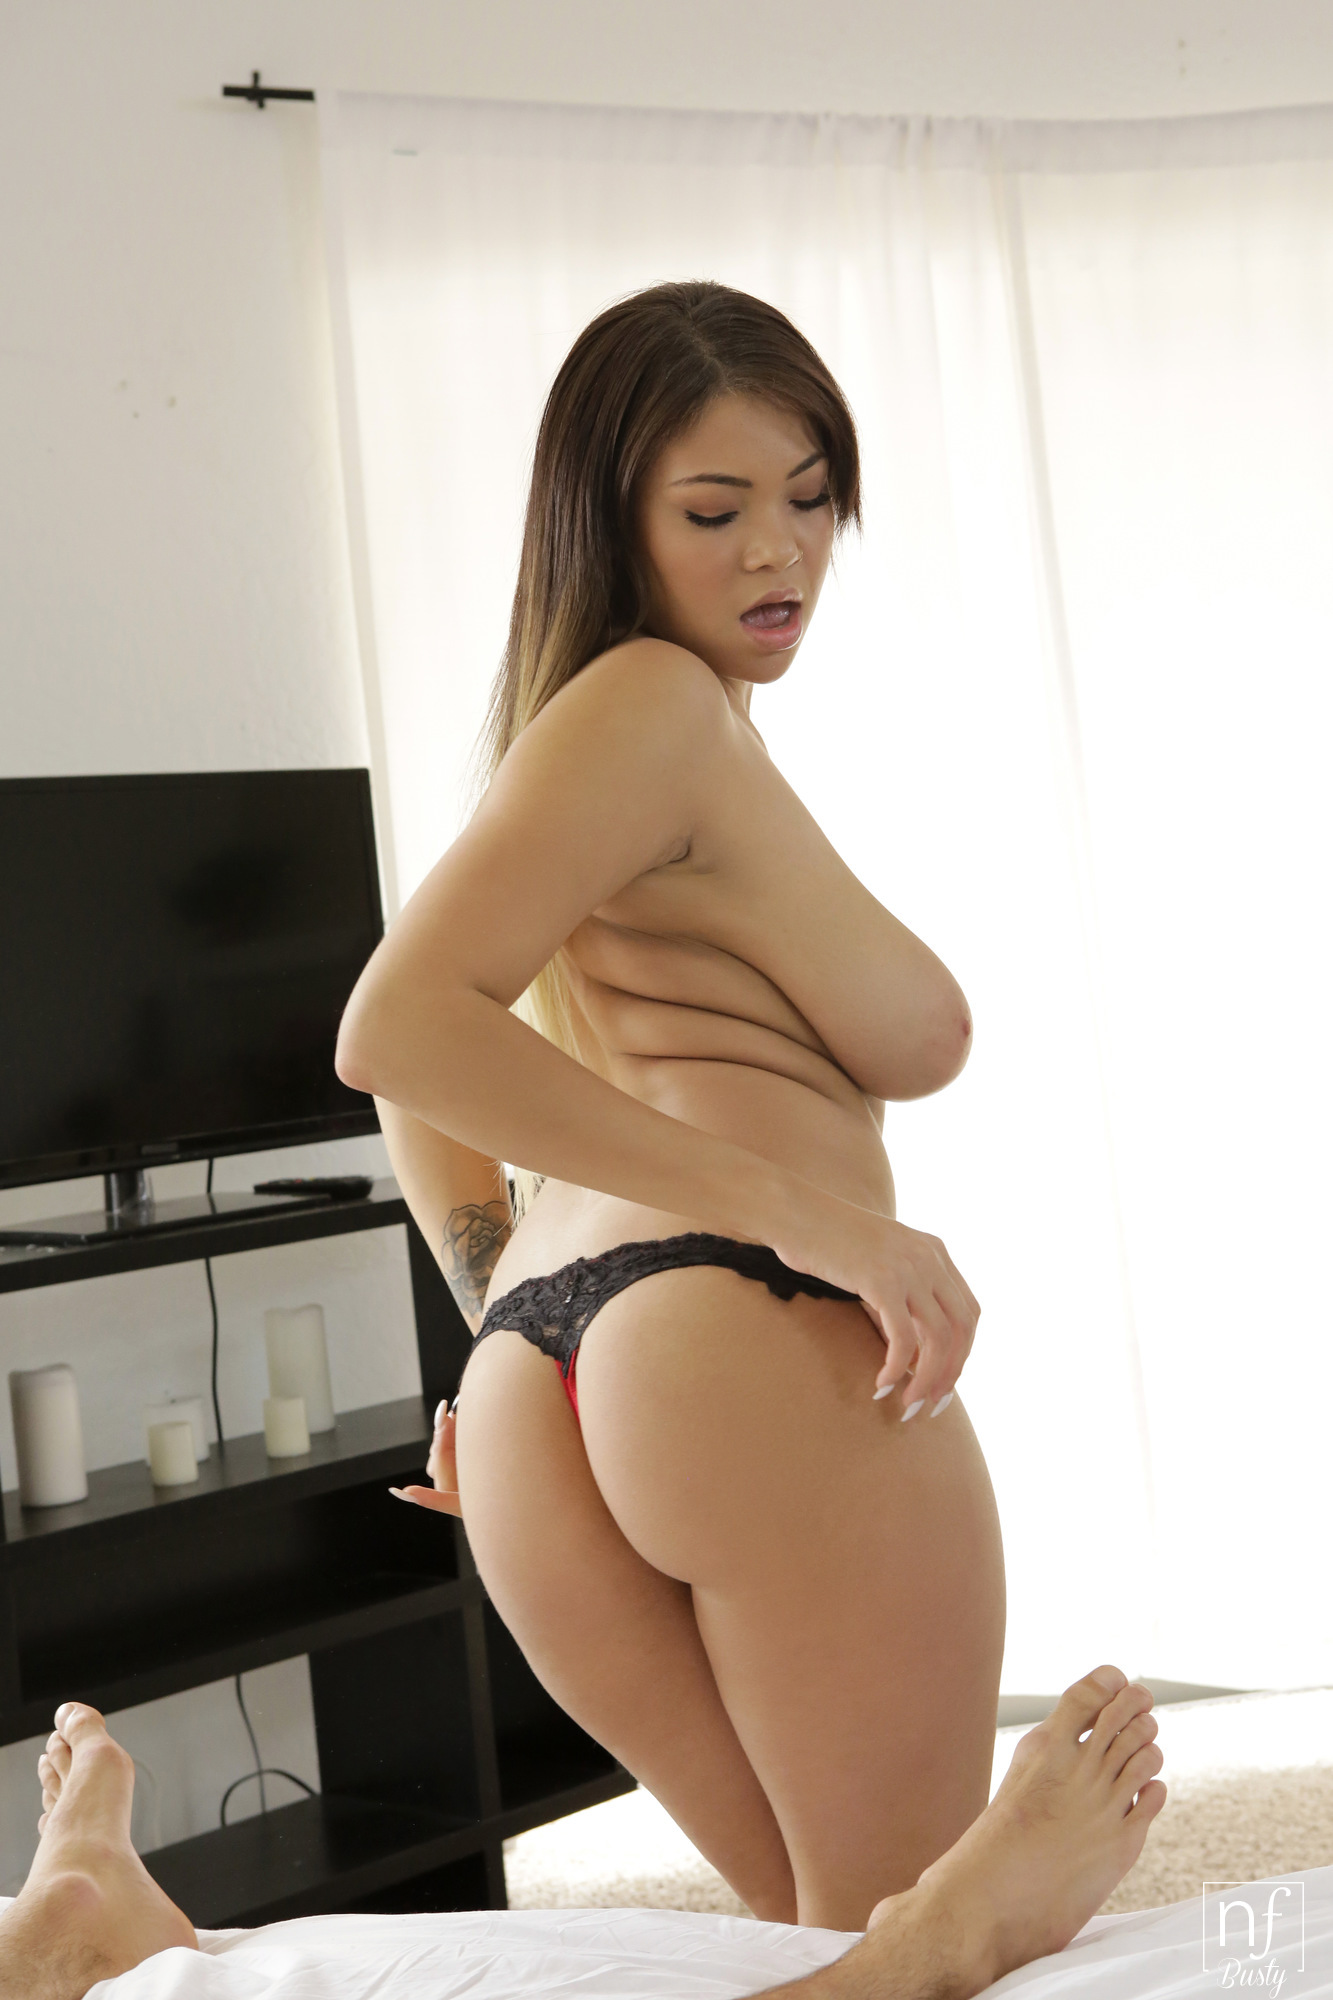 Cassidy banks cassidy shows off her real boobs latina se 4